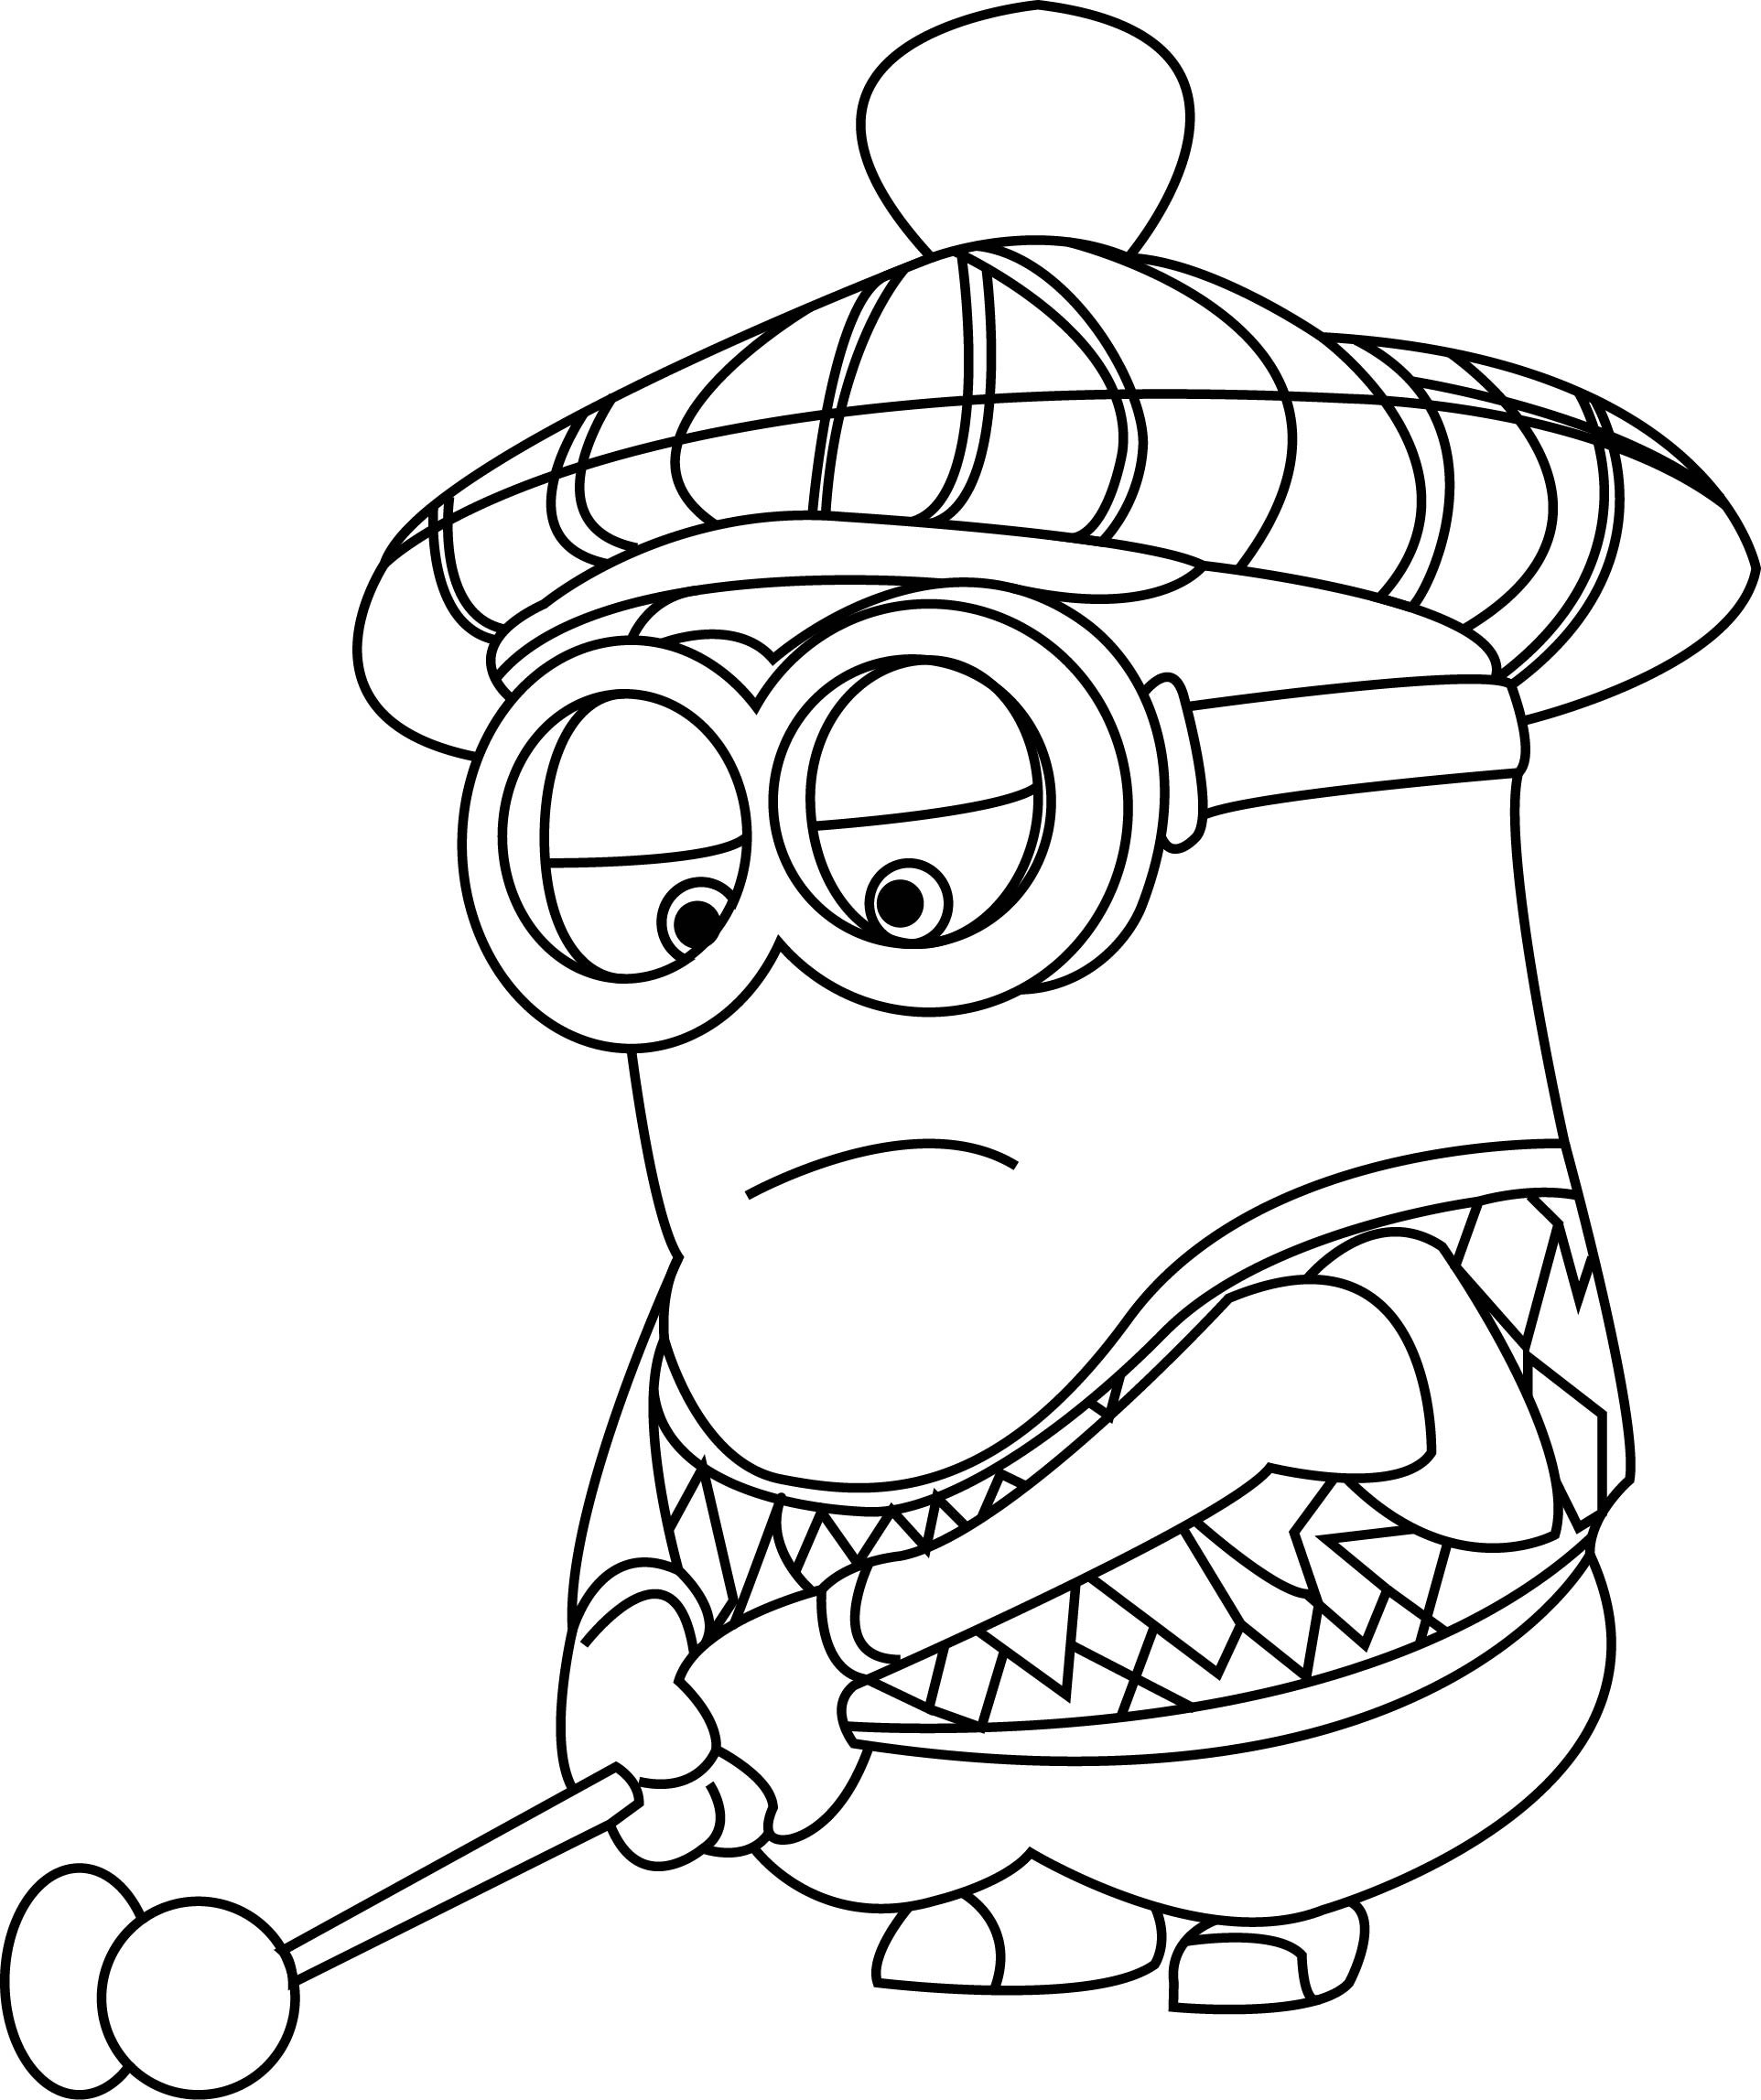 despicable me golfer minions coloring page - Minion Coloring Pages